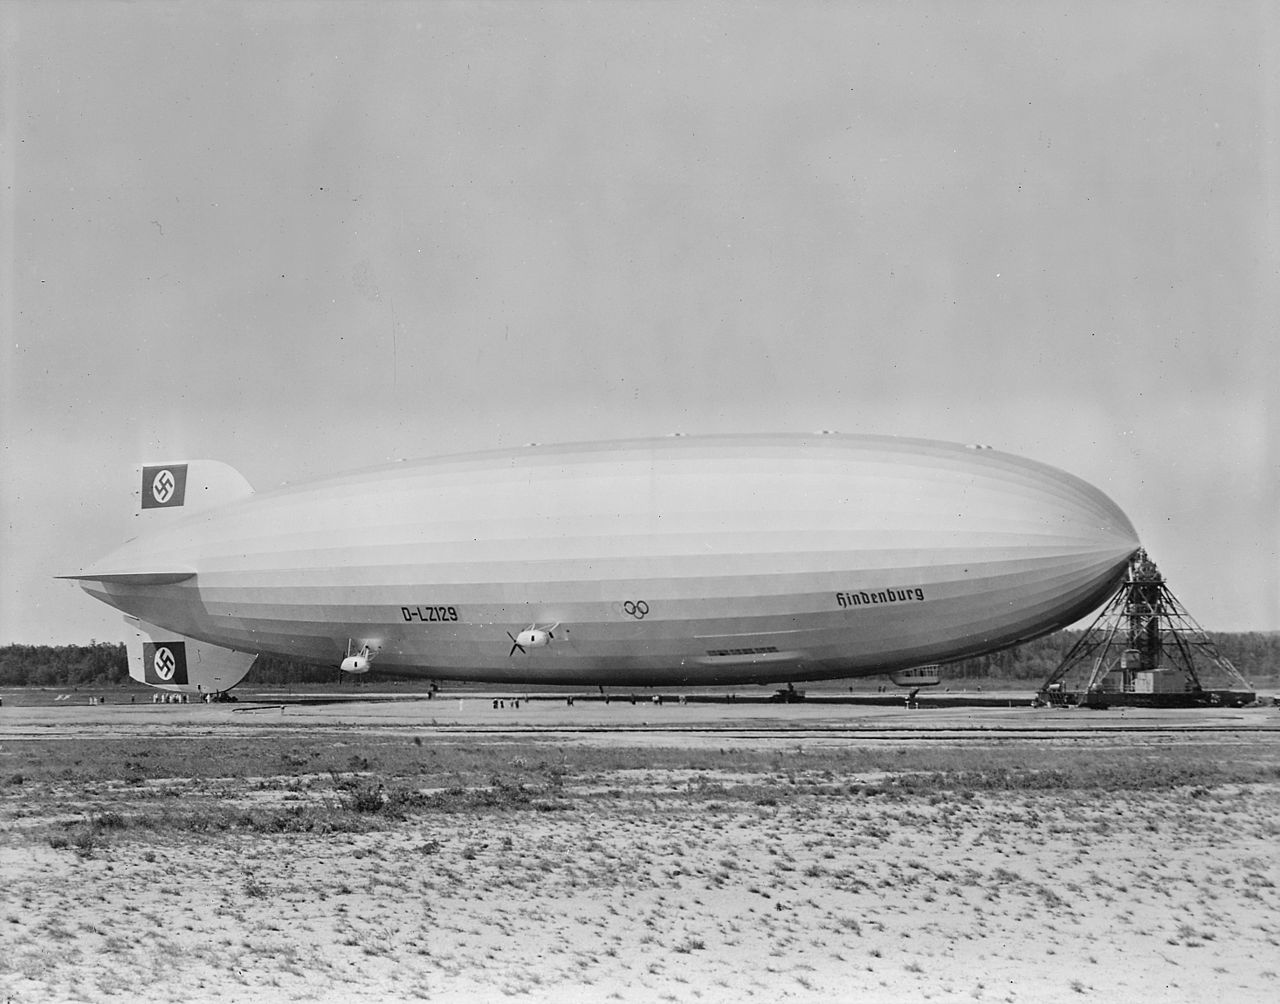 1280px-Hindenburg_at_lakehurst